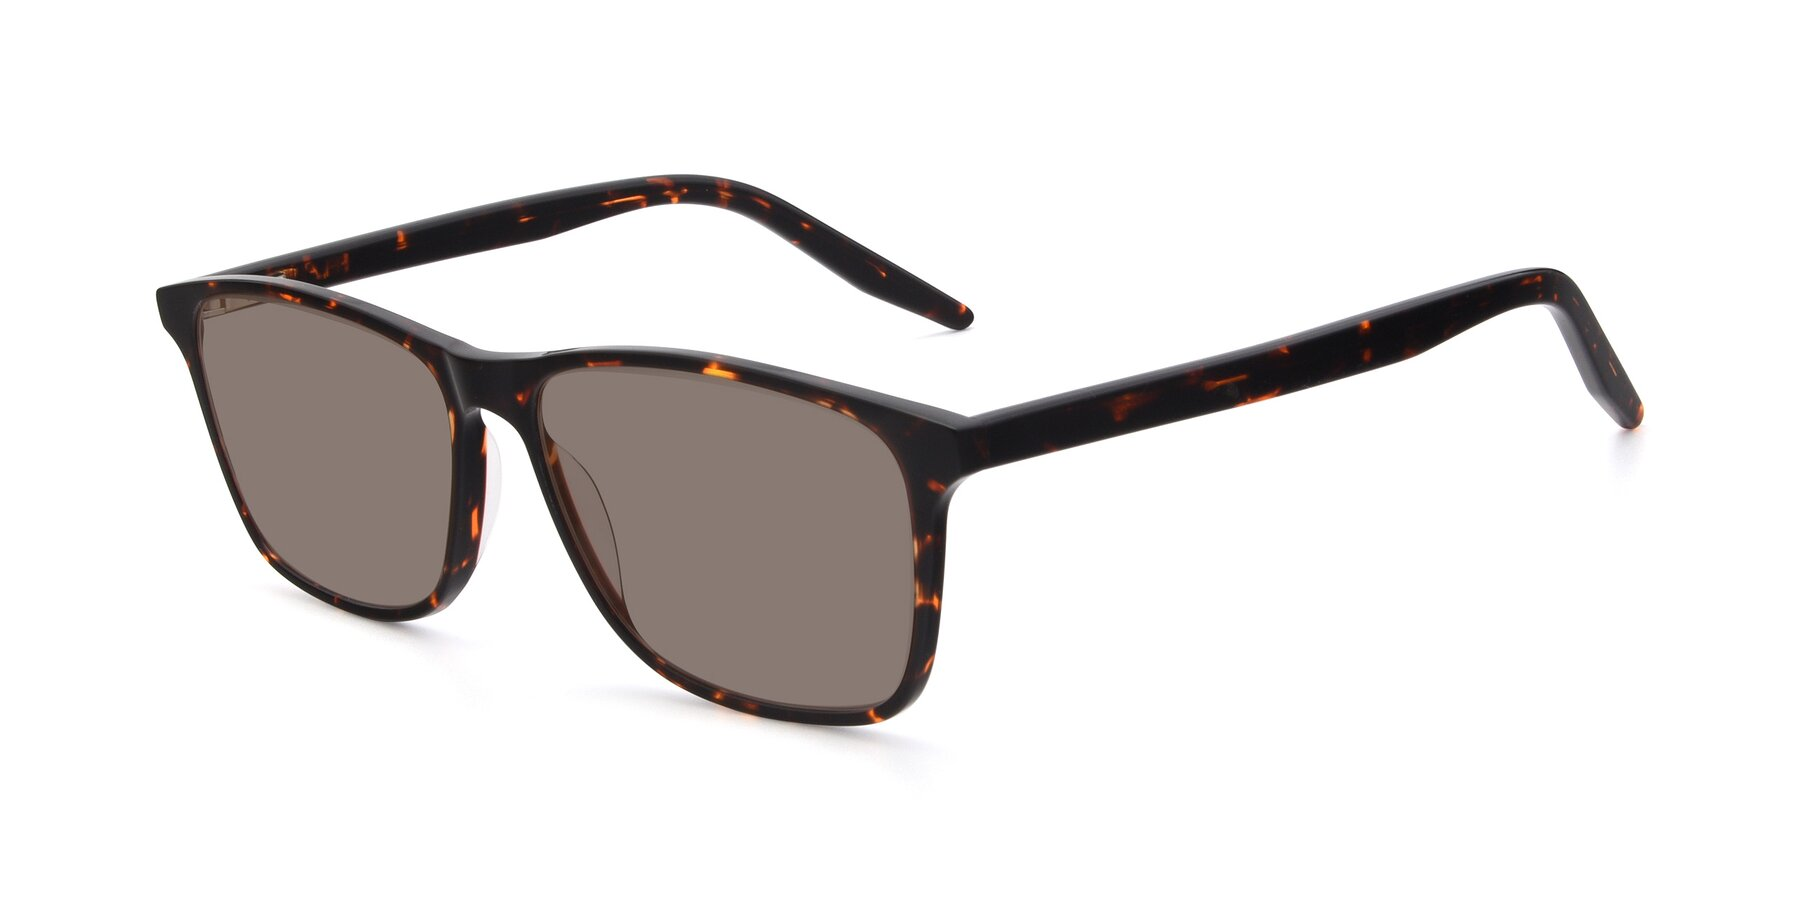 Angle of 17500 in Tortoise with Medium Brown Tinted Lenses